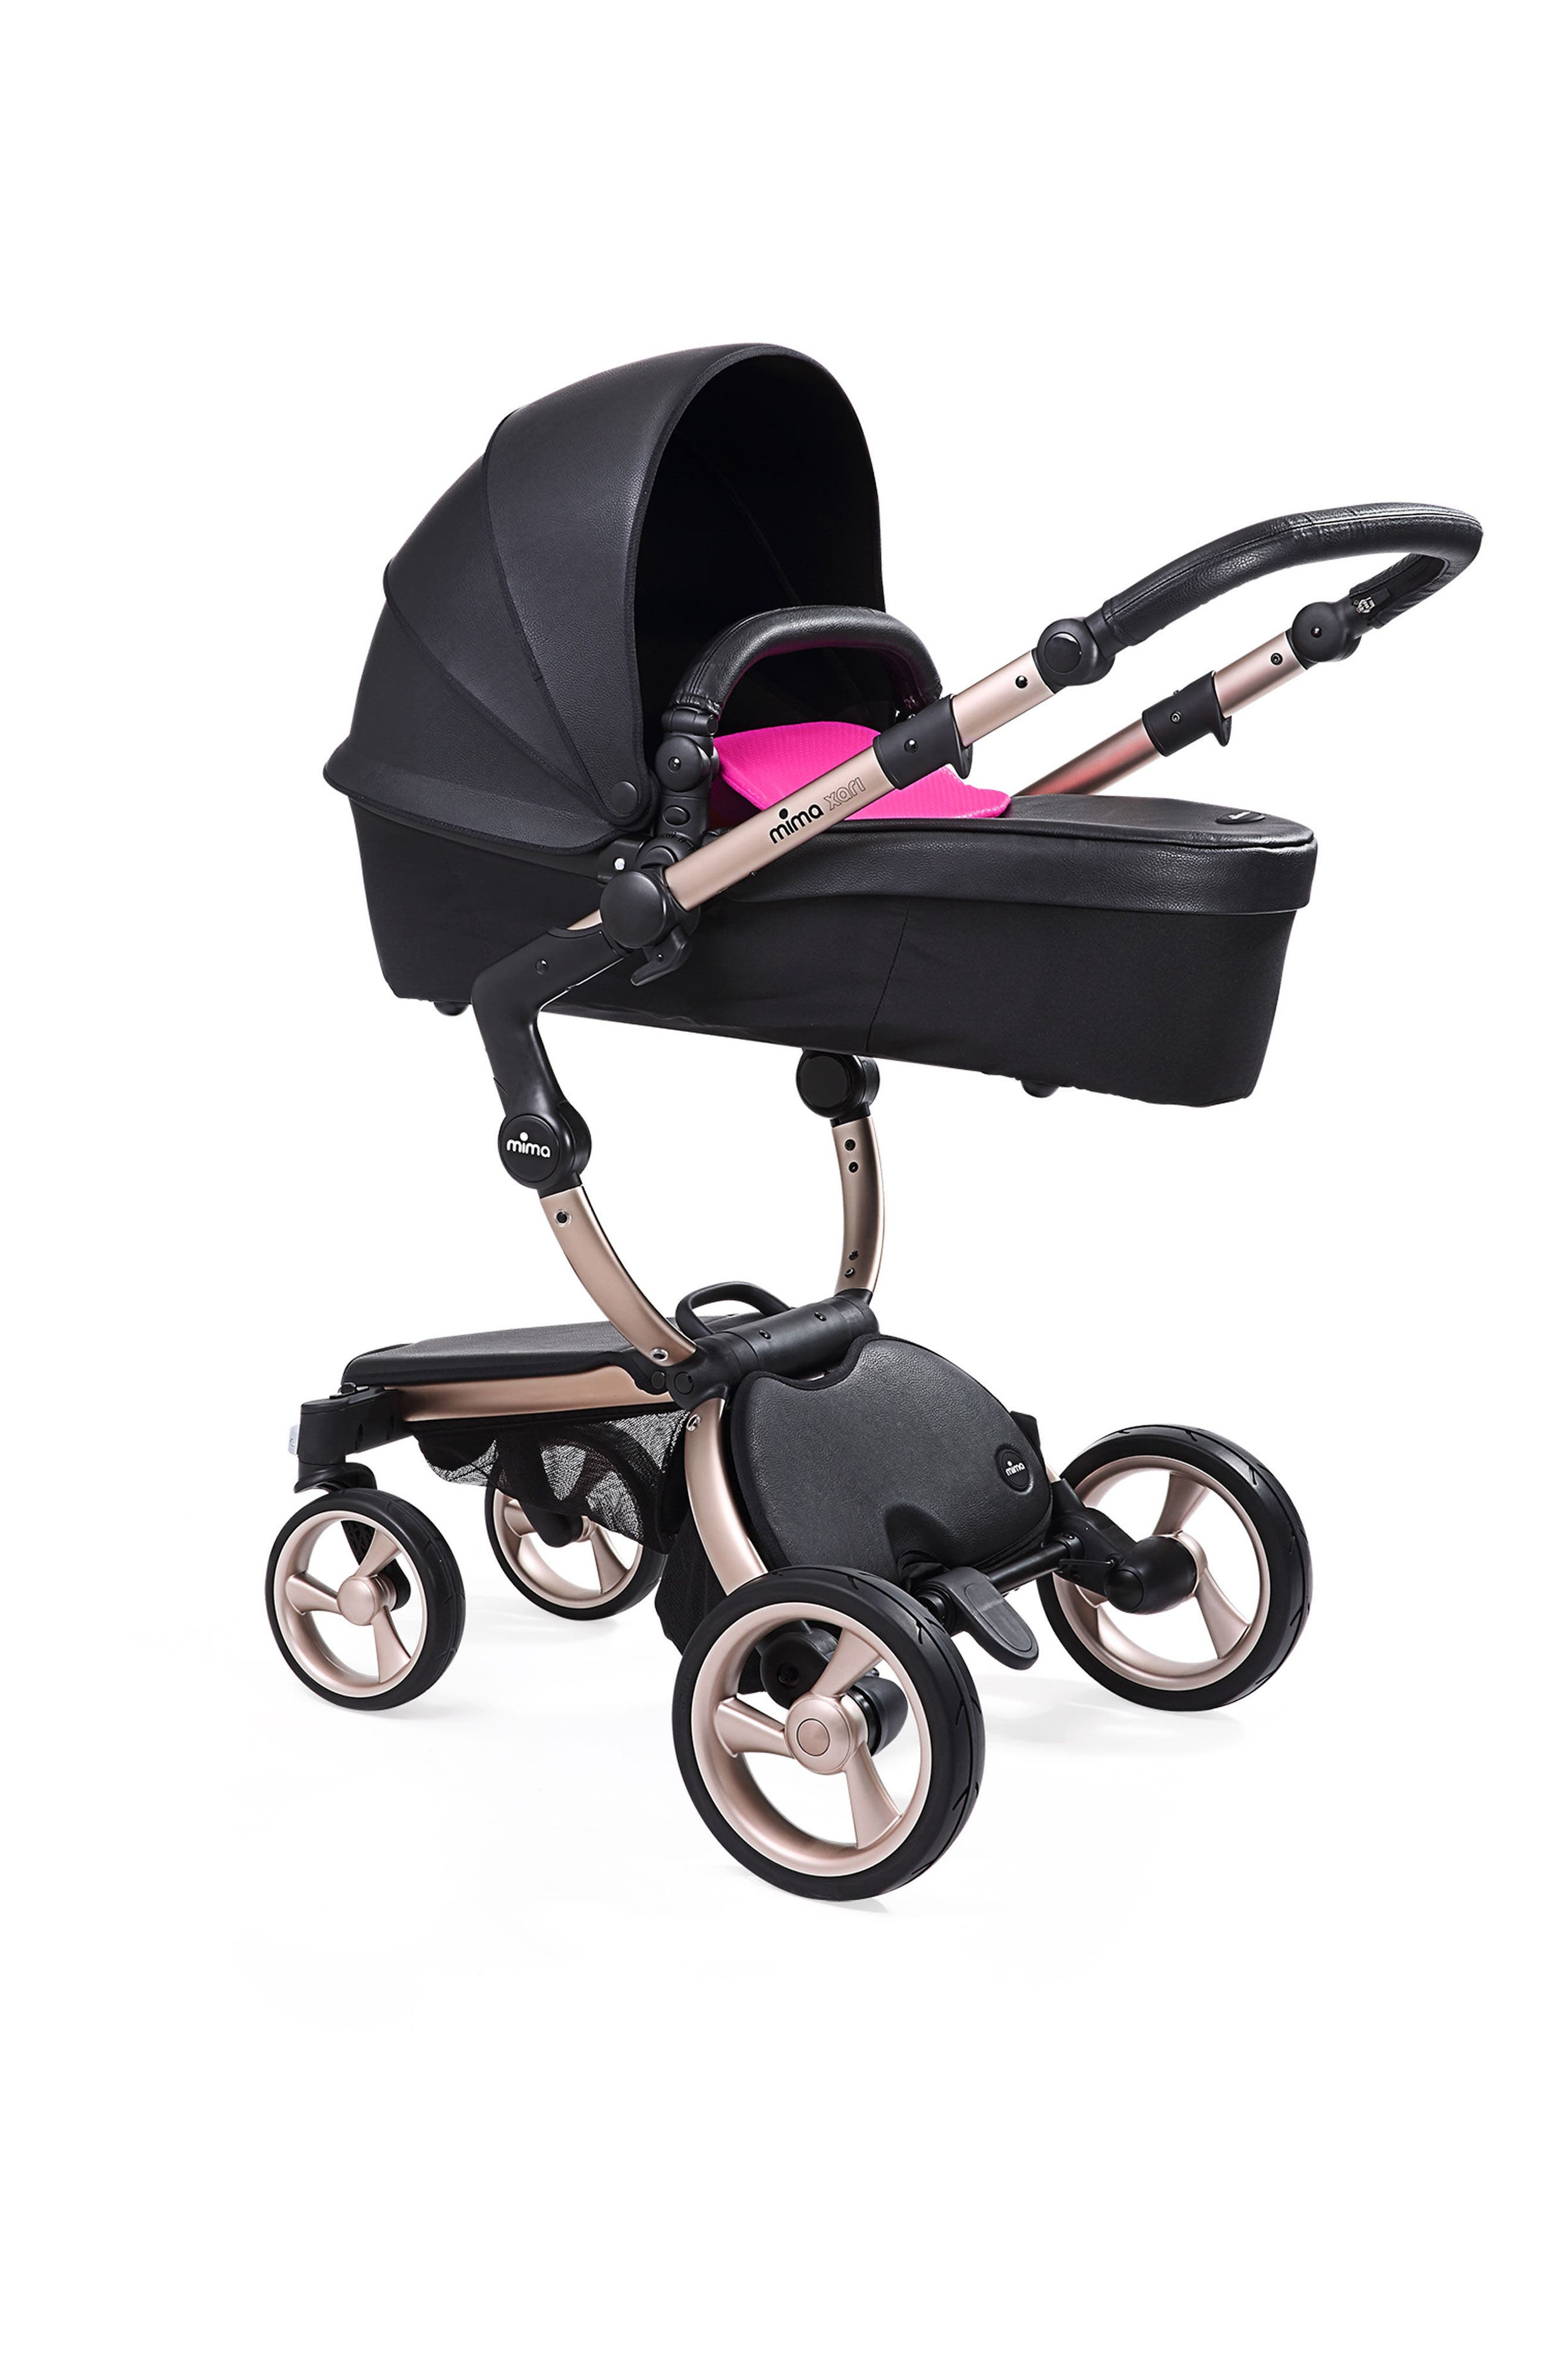 Xari Rose Gold Chassis Stroller with Reversible Reclining Seat & Carrycot,                             Alternate thumbnail 2, color,                             BLACK/ HOT MAGENTA